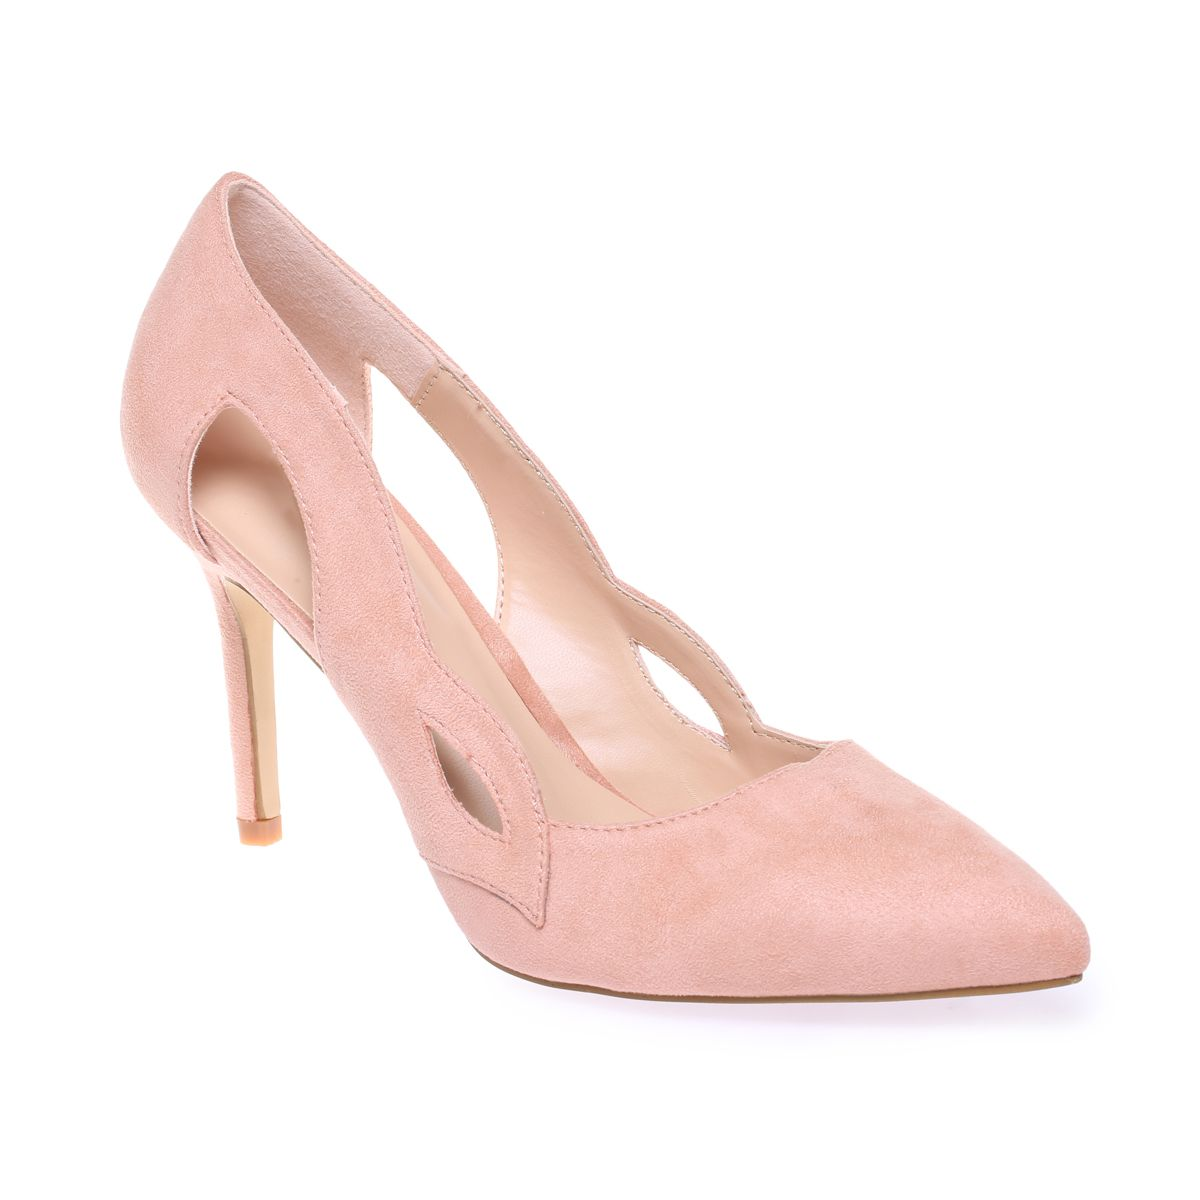 Chaussures roses UV38hOmj